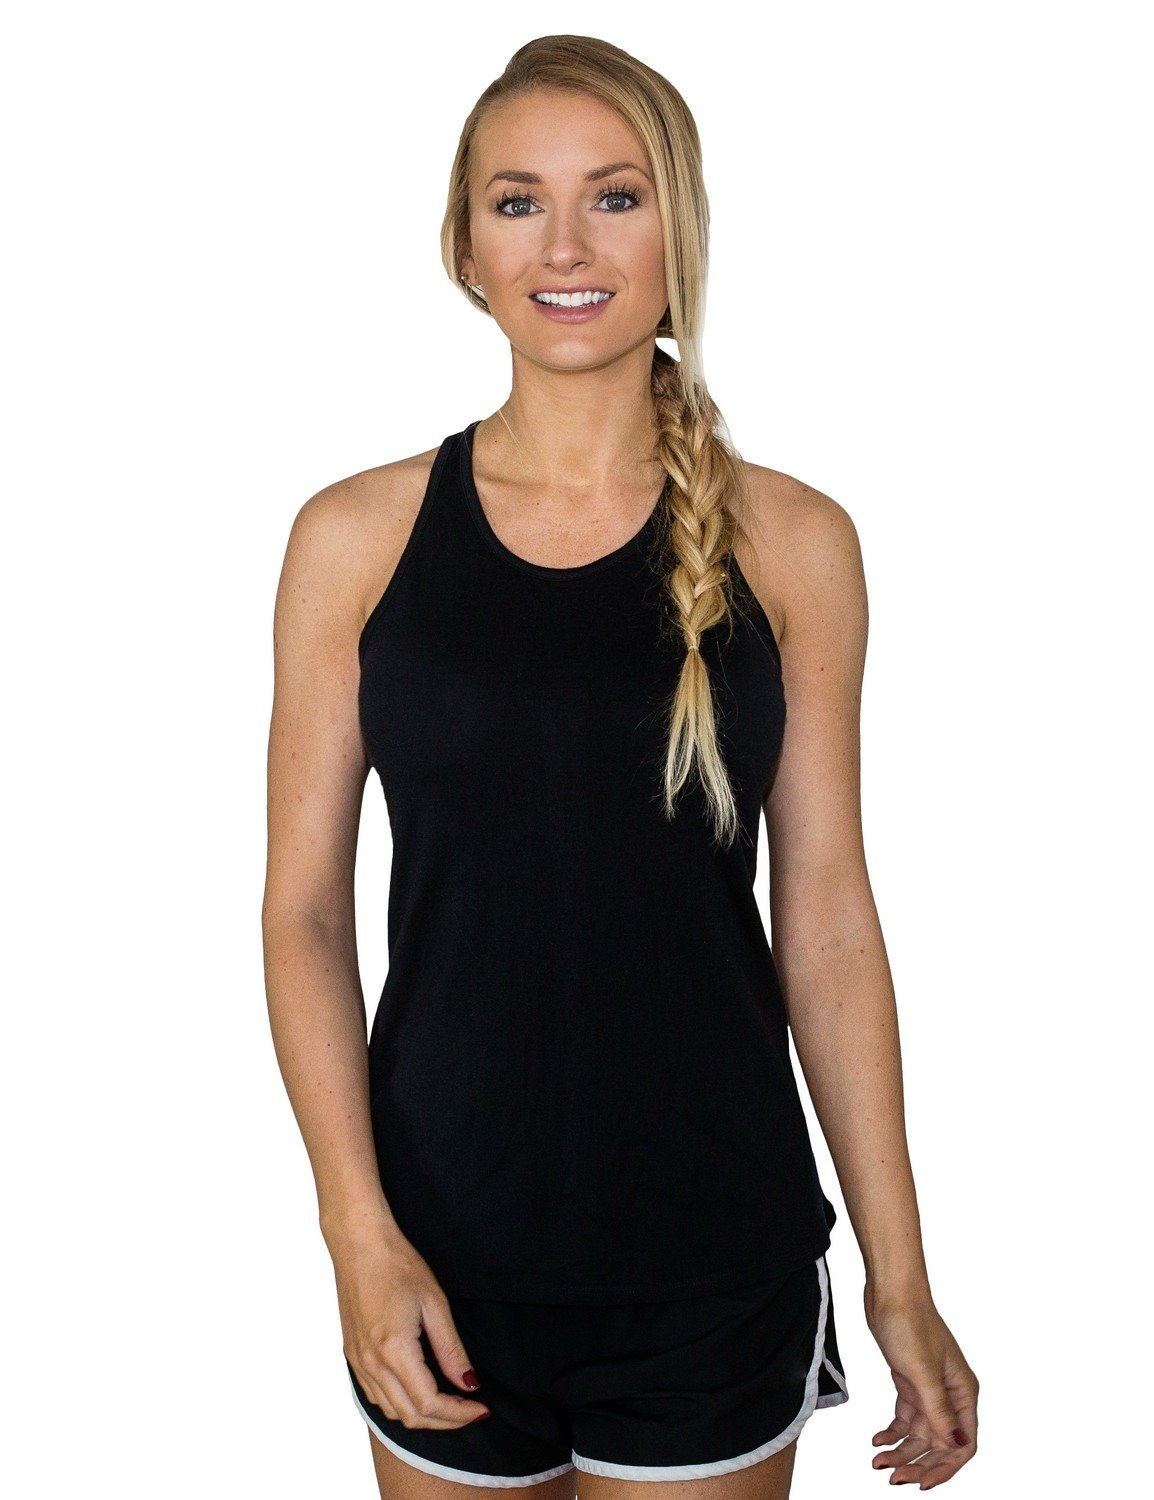 392871711f8c5 100% Extremely Lightweight Merino Wool - 17.5 Micron - 160g m² - Wicks  Moisture - Regulates Body Temperature Imported SUMMER TANK TOP  From  dedicated ...